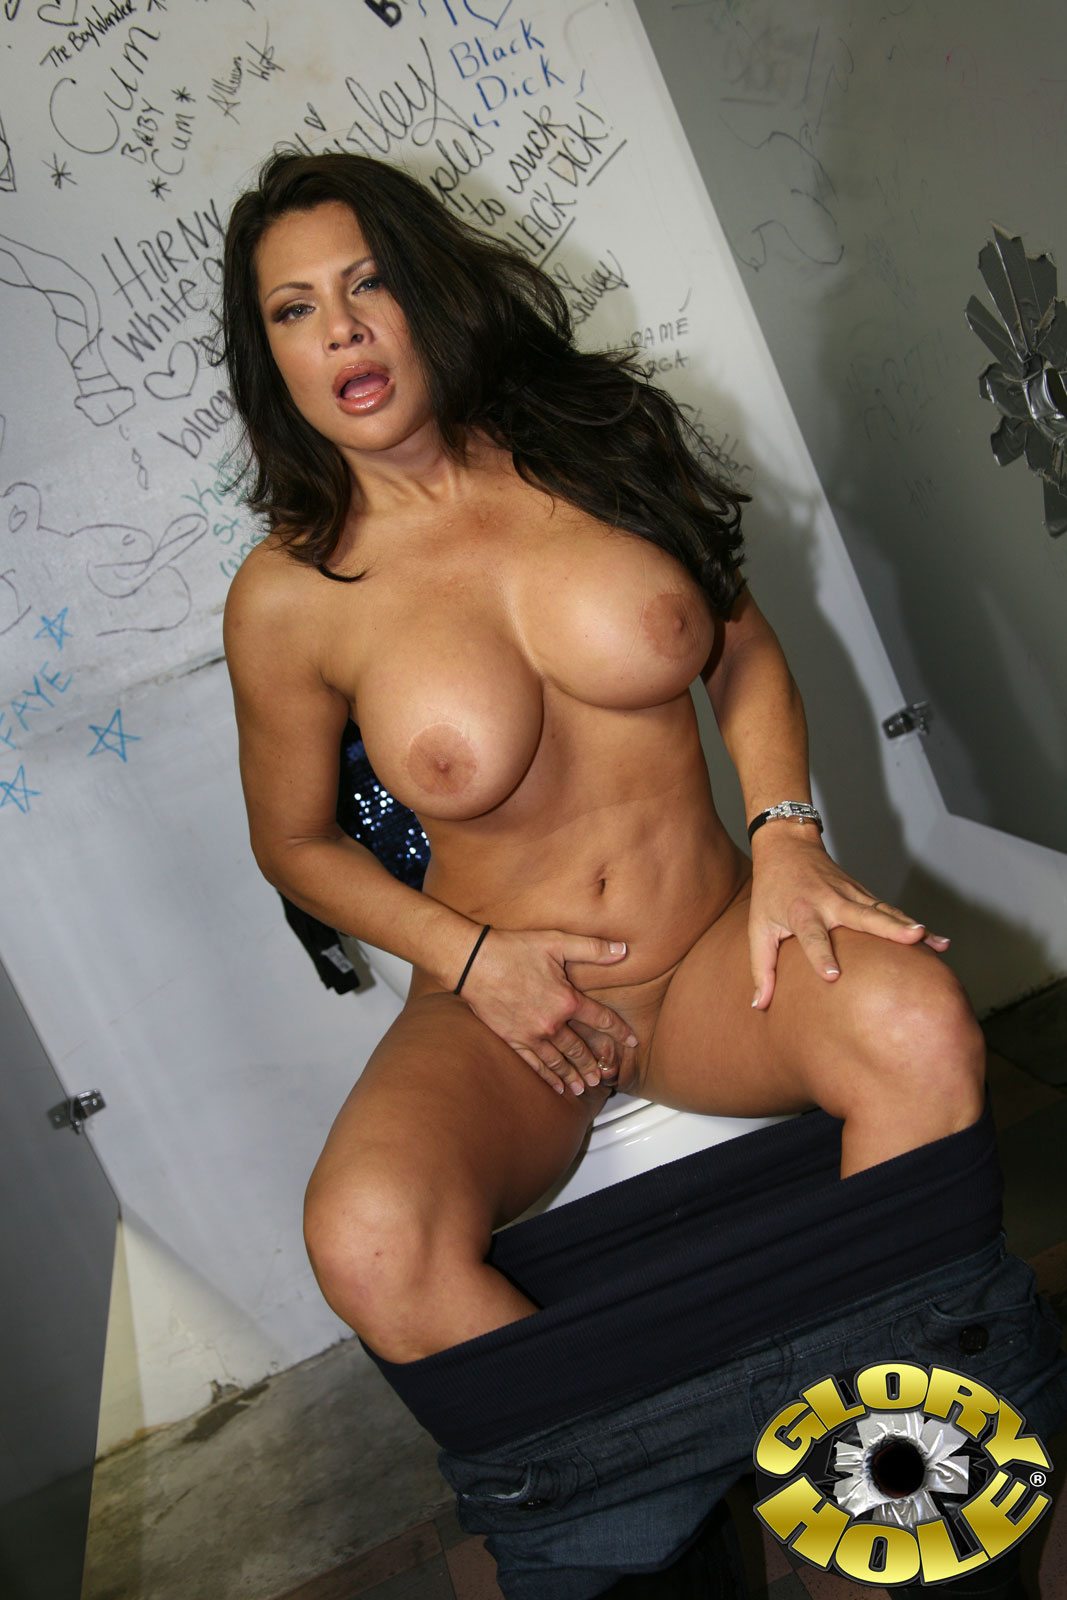 galleries GloryHole content teri weigel pic 14